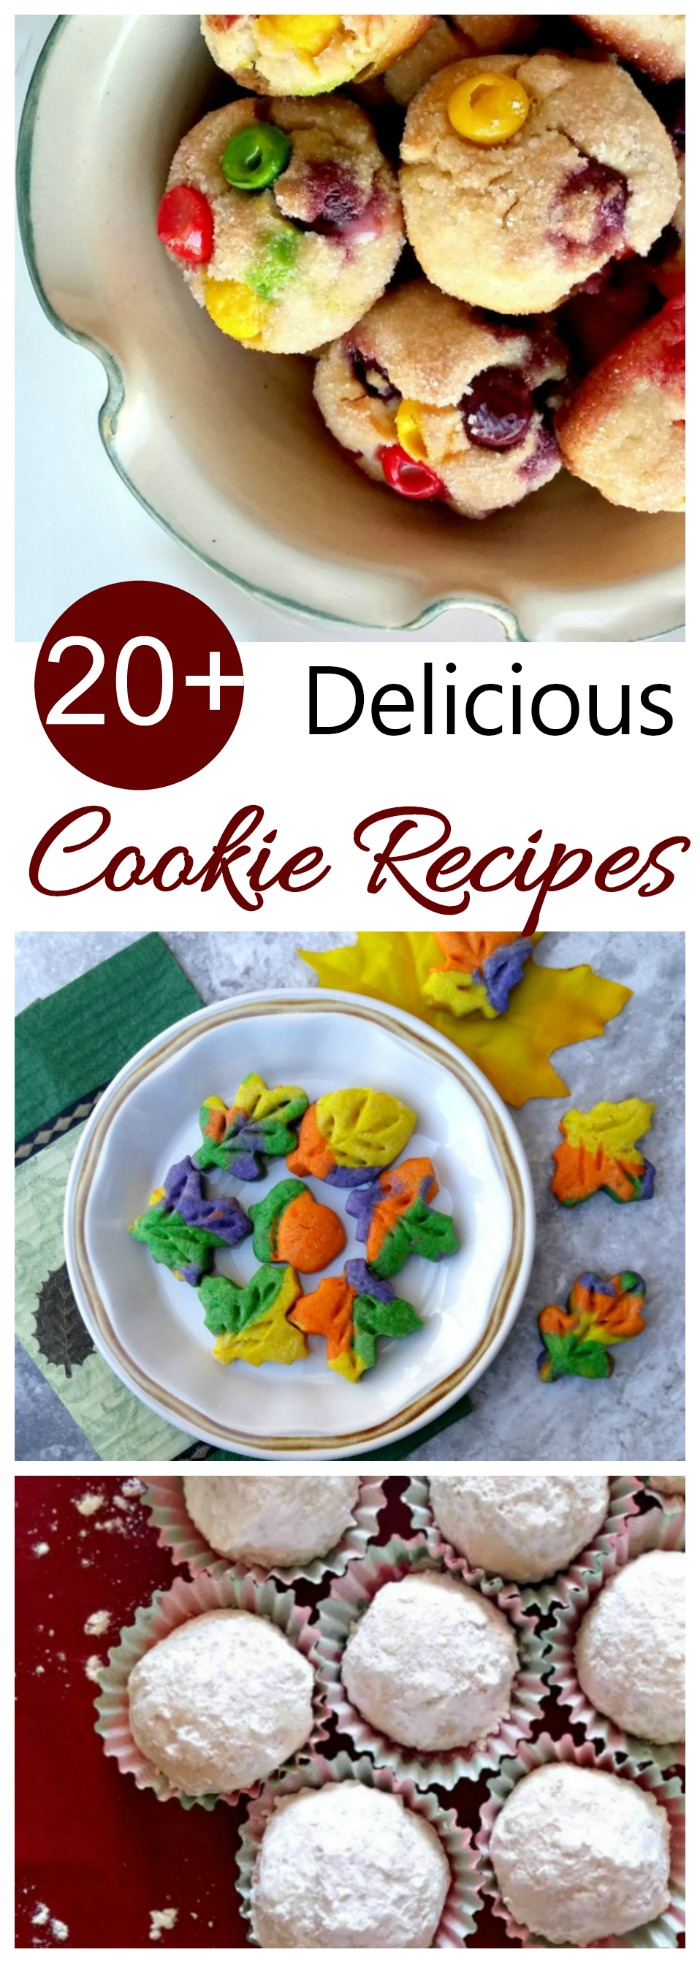 October 1 is homemade cookie day and the start of the holiday baking season. These 20+ cookie recipes are the perfect way to celebrate #nationalcookieday #homemadecookies